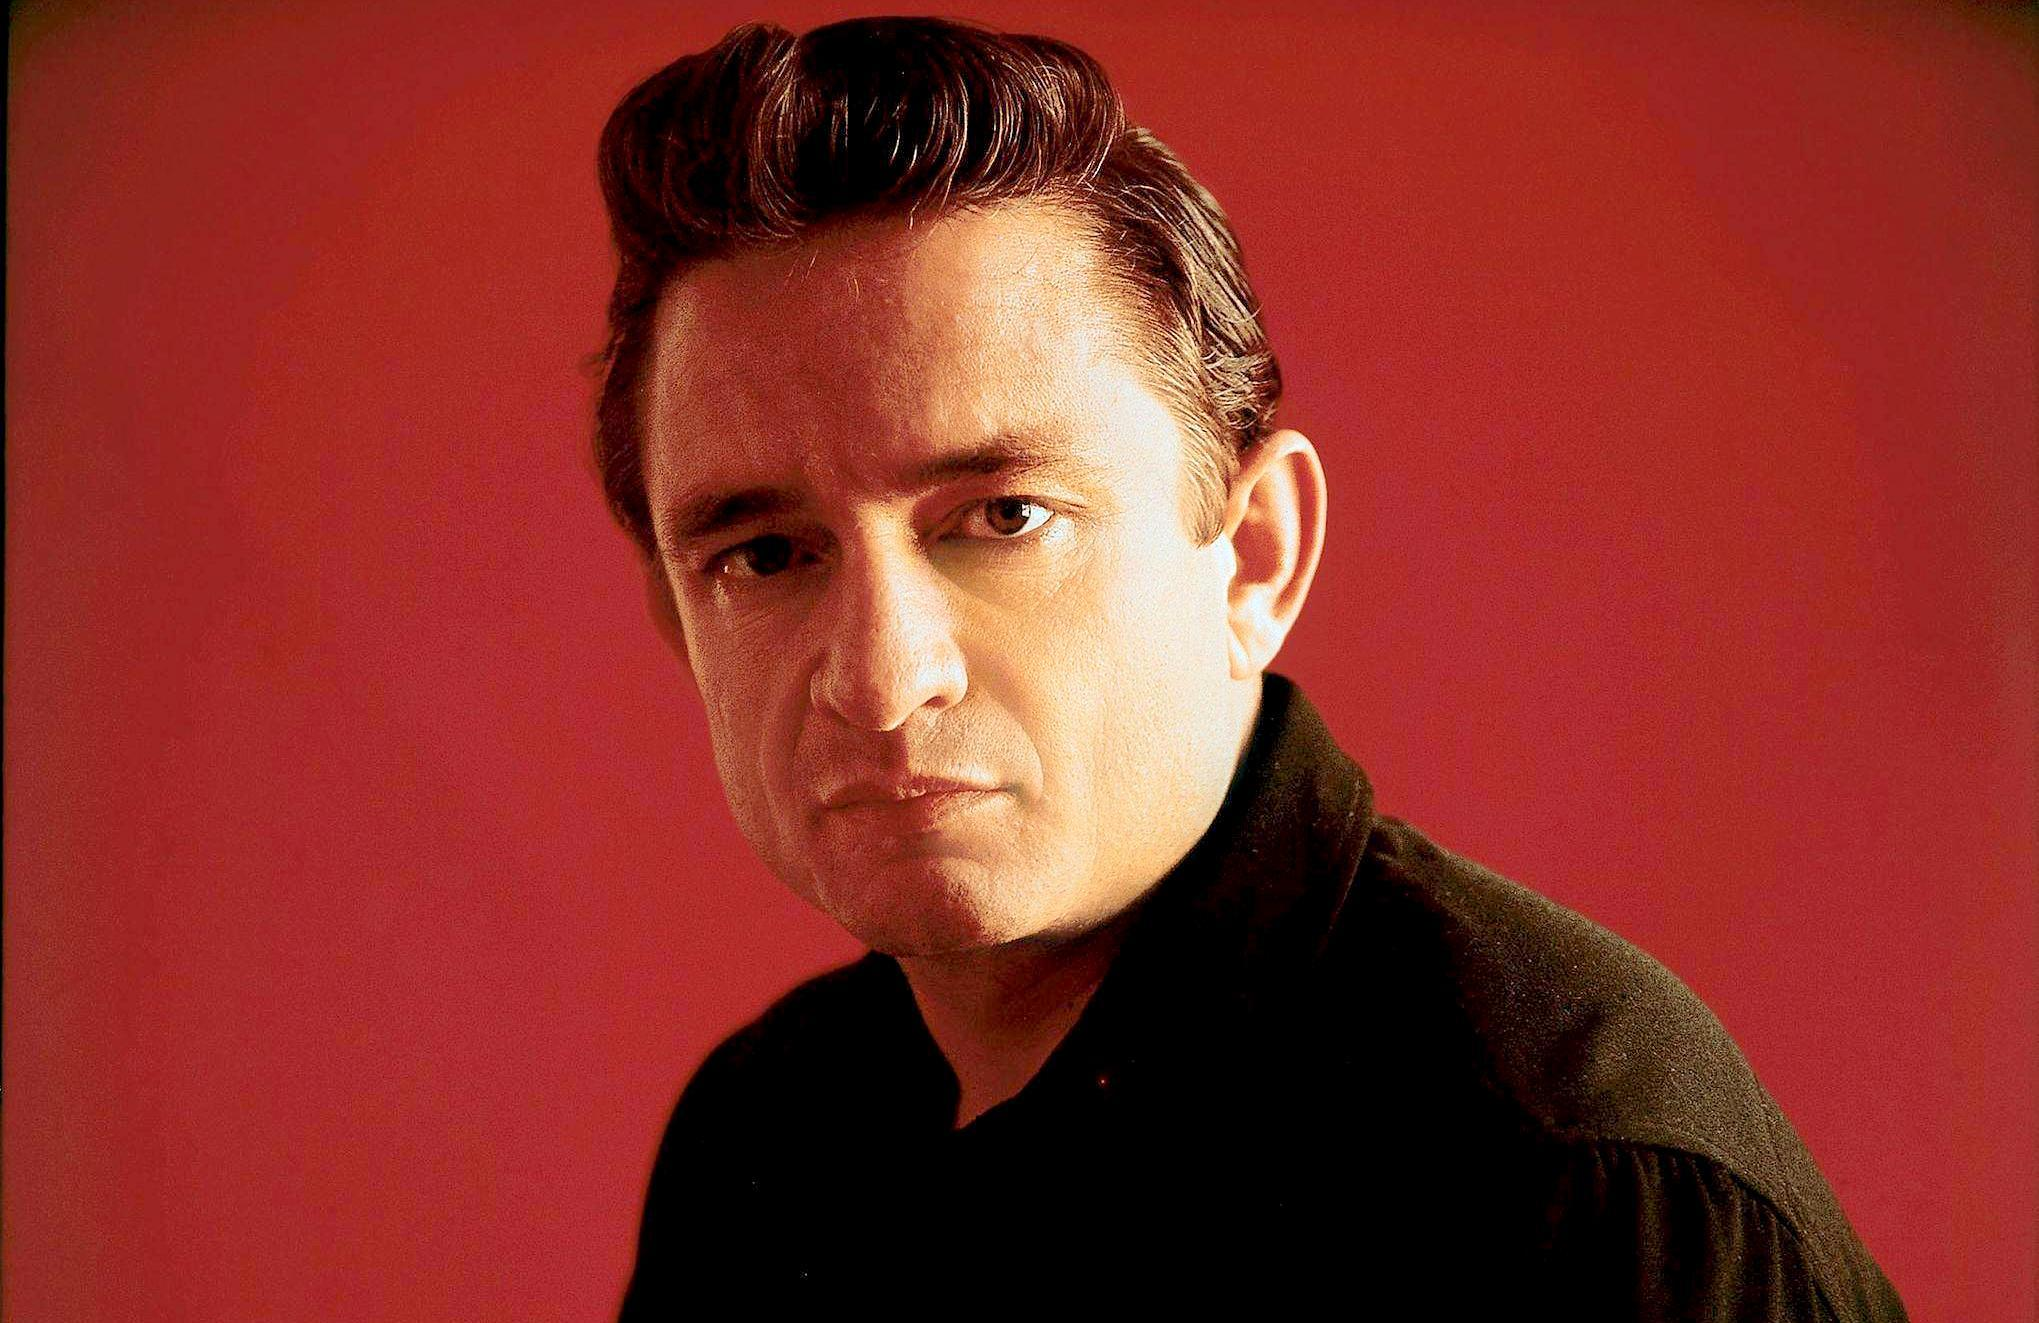 Johnny Cash Wallpapers 2039x1323